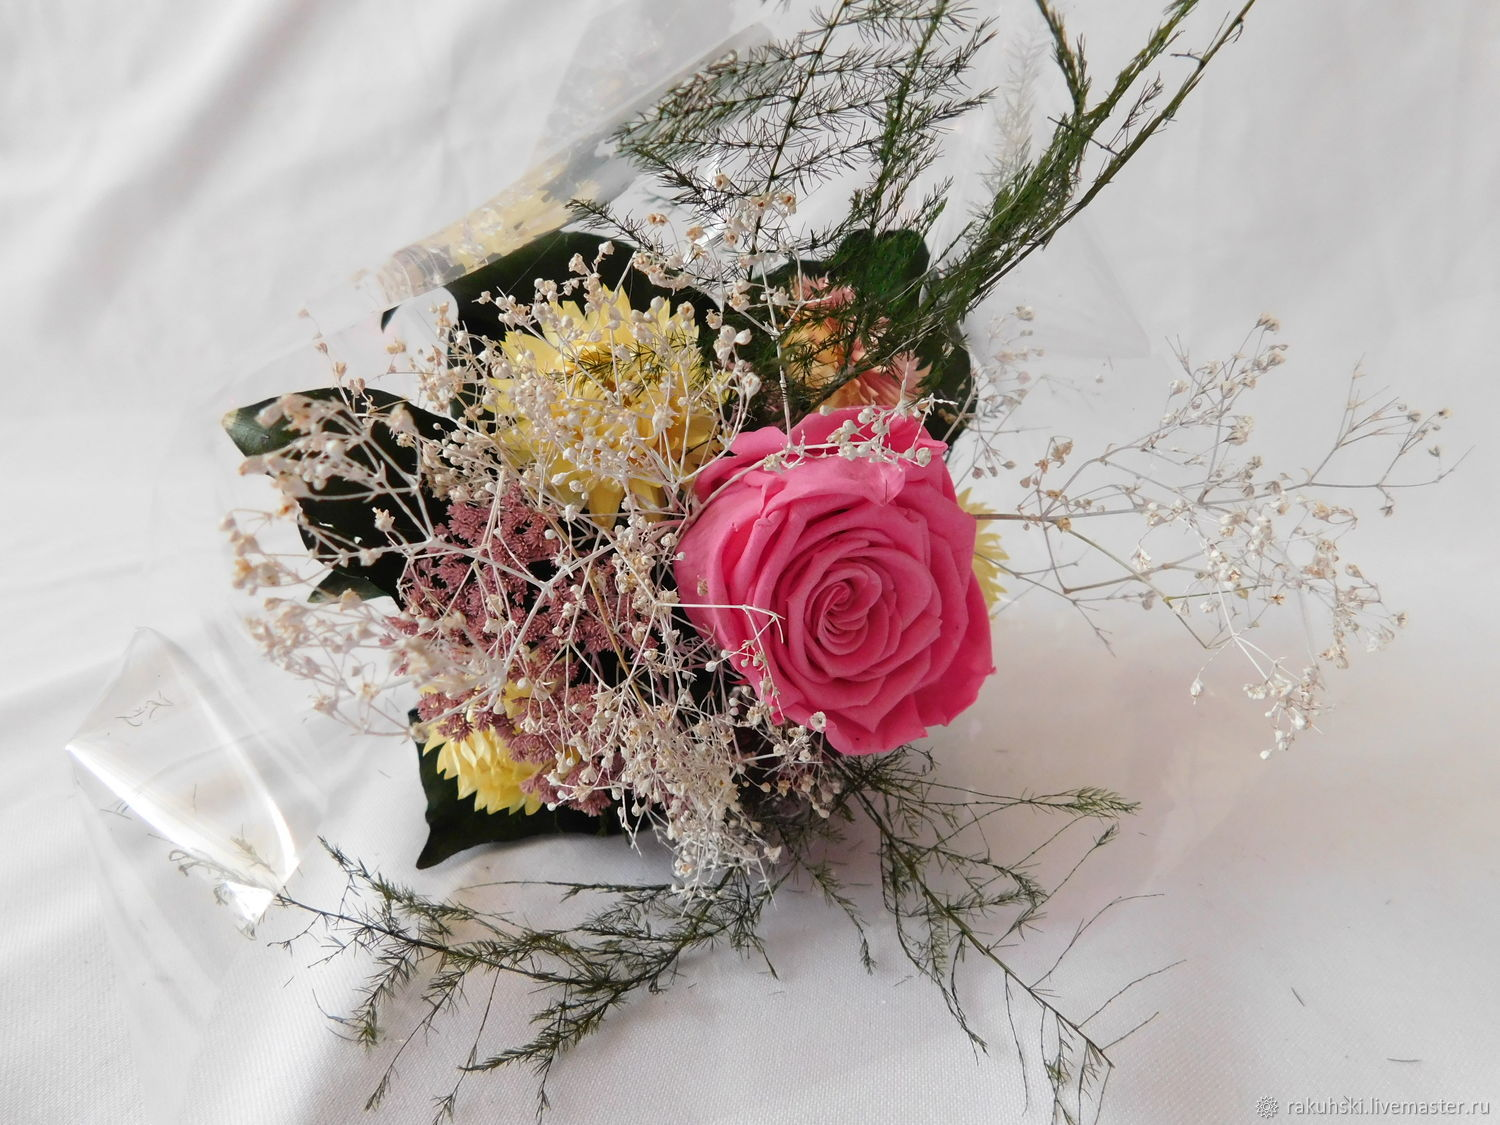 Bouquet of dried flowers rose 3 shop online on livemaster with buy bouquet of dried flowers rose 3 izmirmasajfo